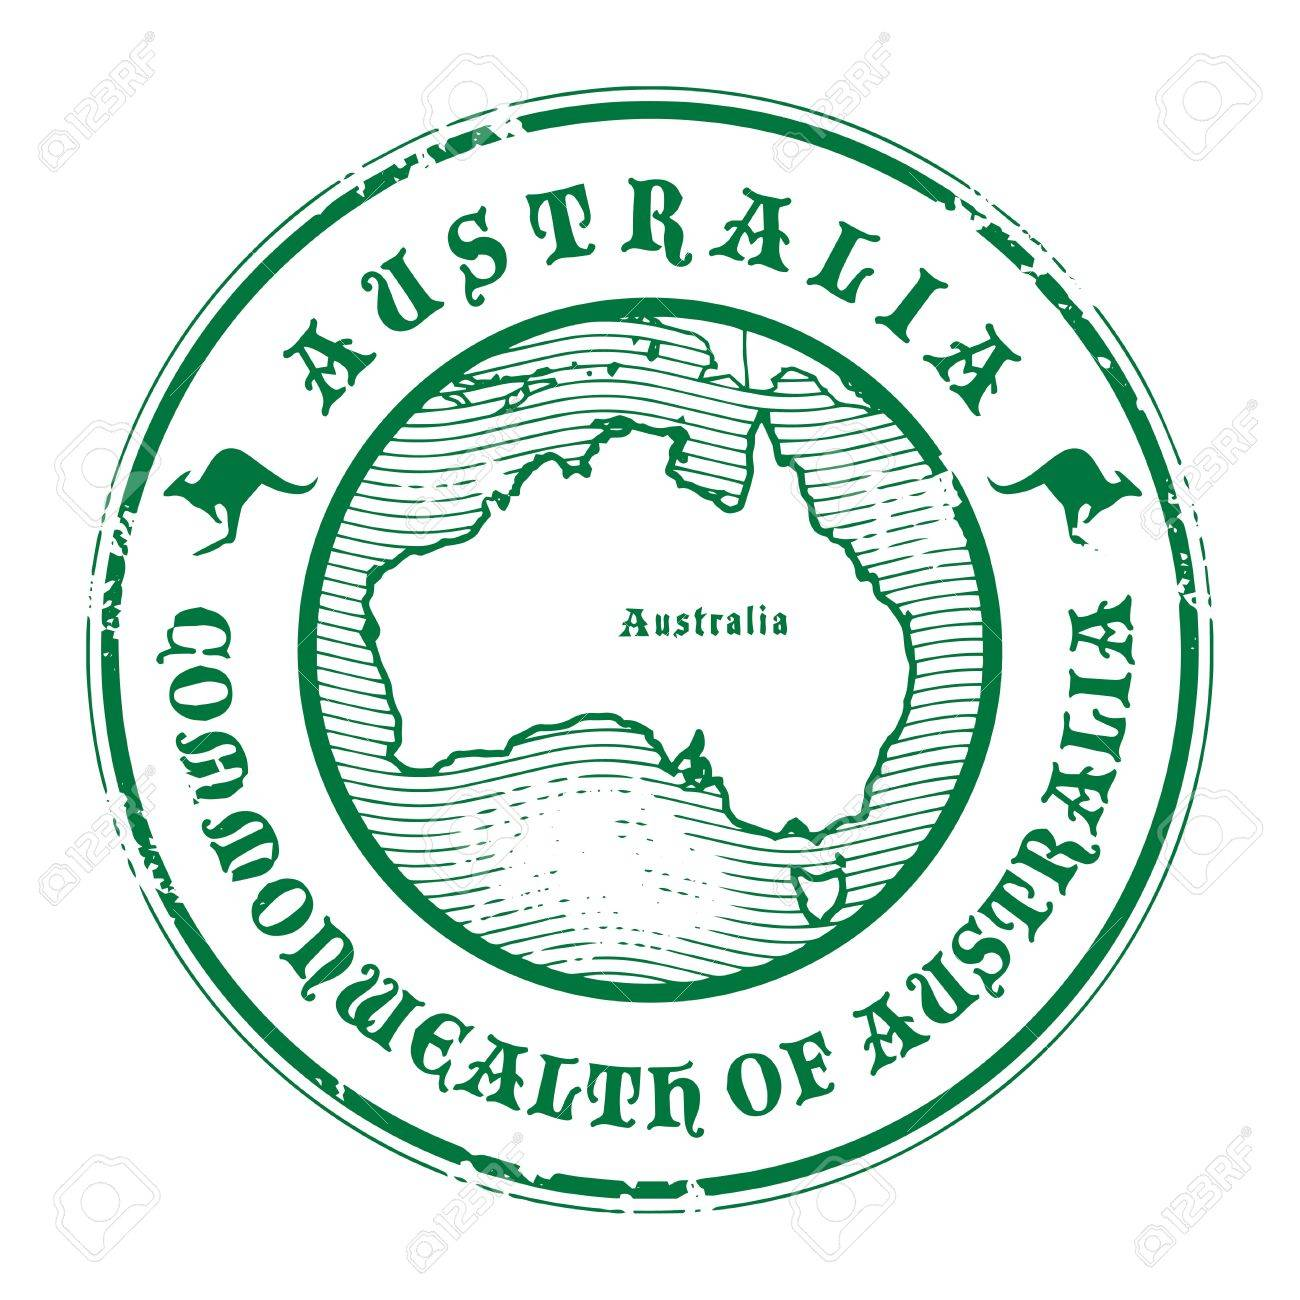 Grunge Rubber Stamp With The Name And Map Of Australia Stock Vector